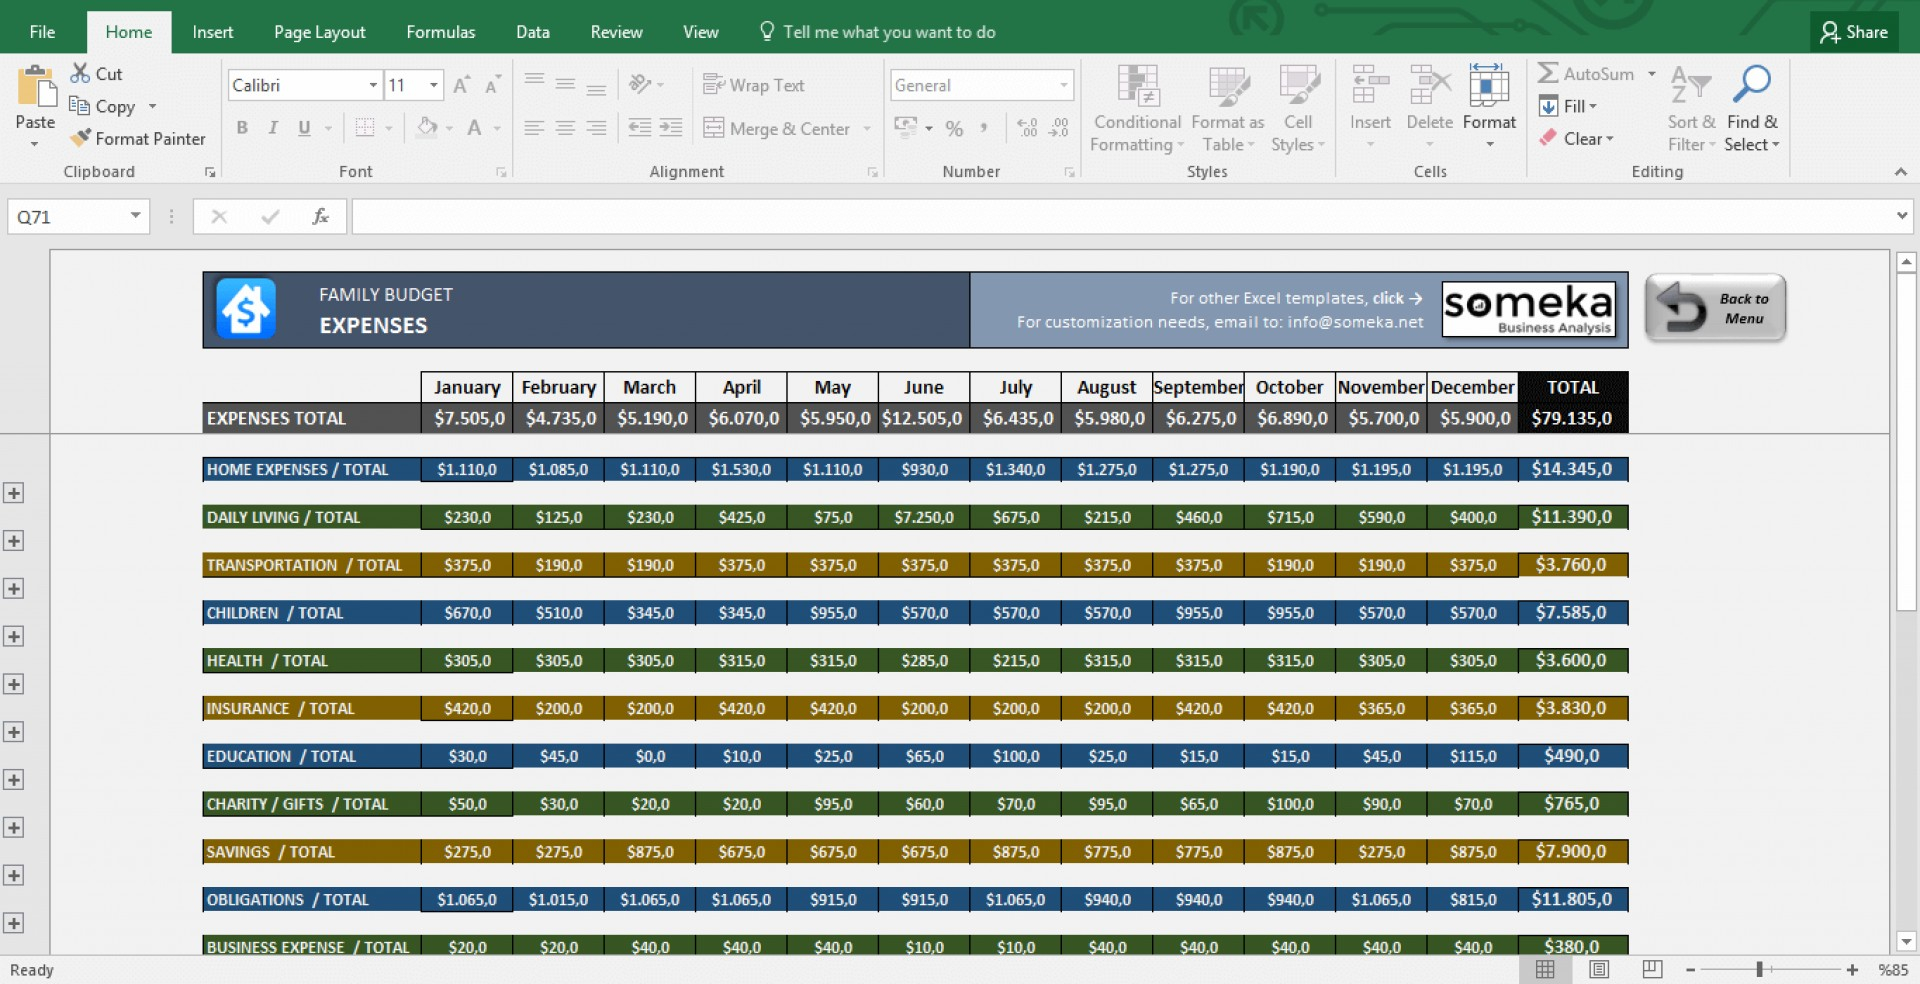 Household Budget Spreadsheet Regarding 022 Template Ideas Free Home Budget Spreadsheet Uk Personal